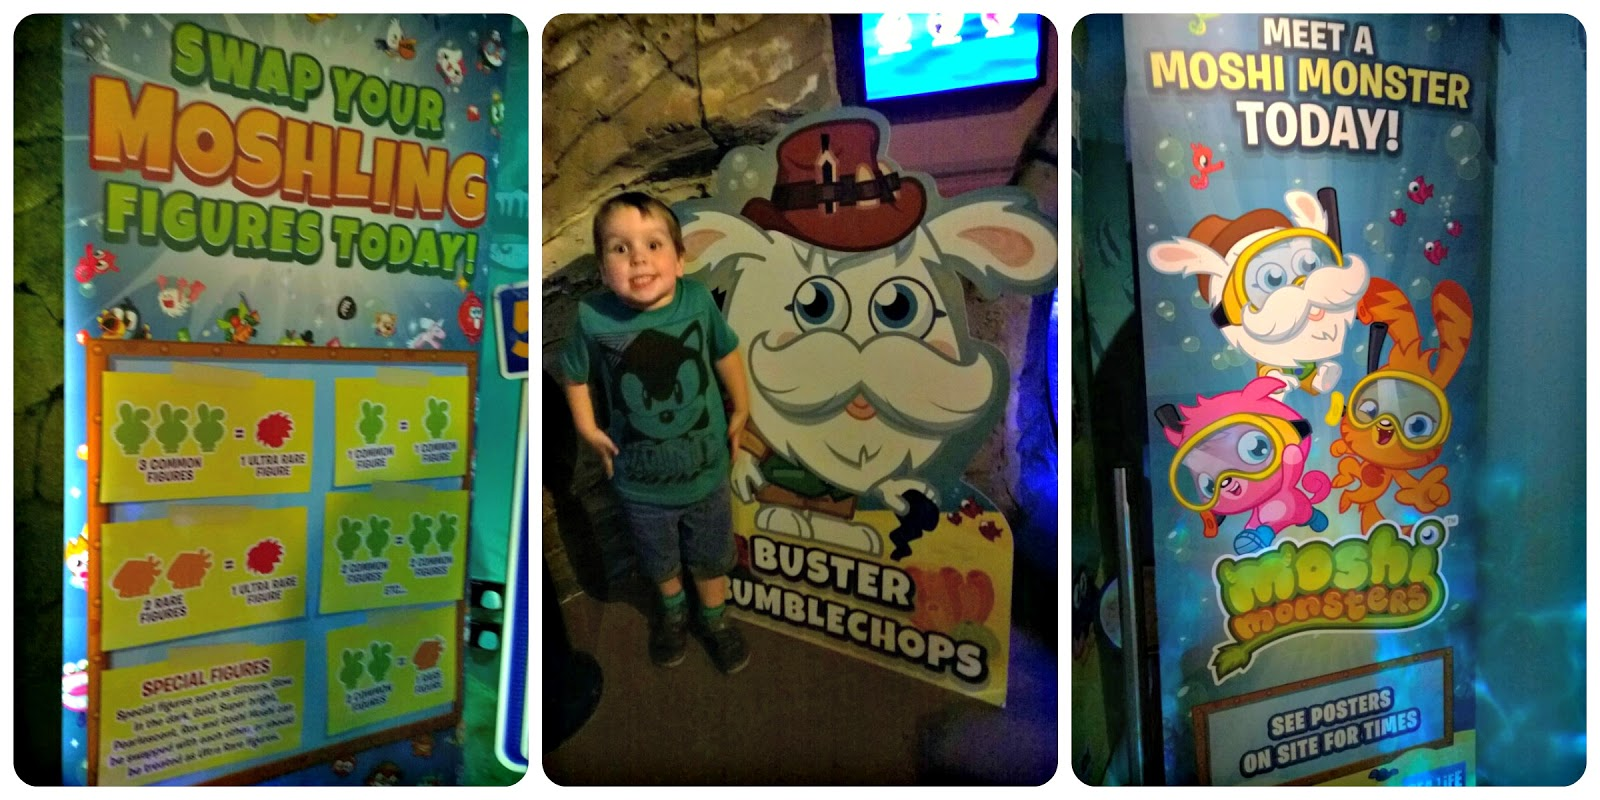 Moshi Monsters at SEA LIFE Centre Manchester